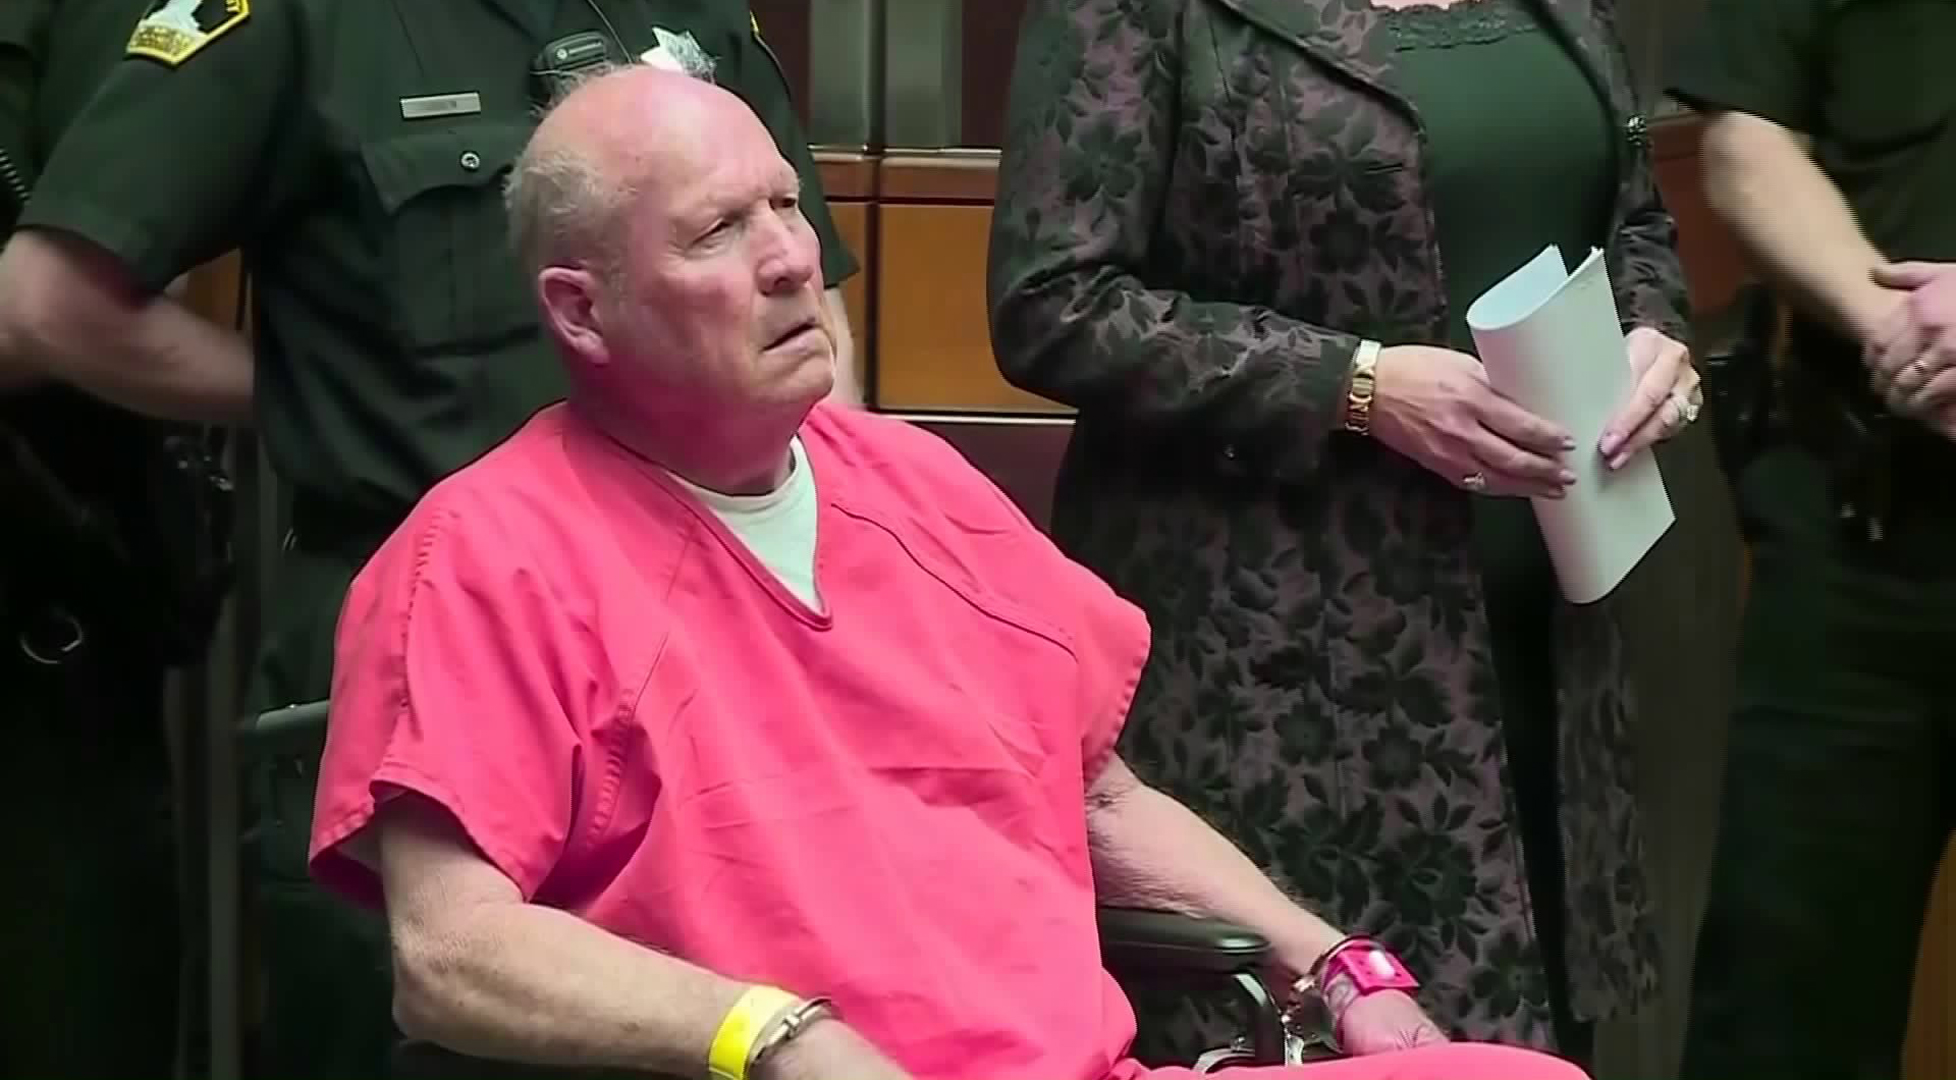 Joseph James DeAngelo, the man suspected of being the Golden State Killer, appears in court for the first time in Sacramento on April 27, 2018. (Credit: CNN)